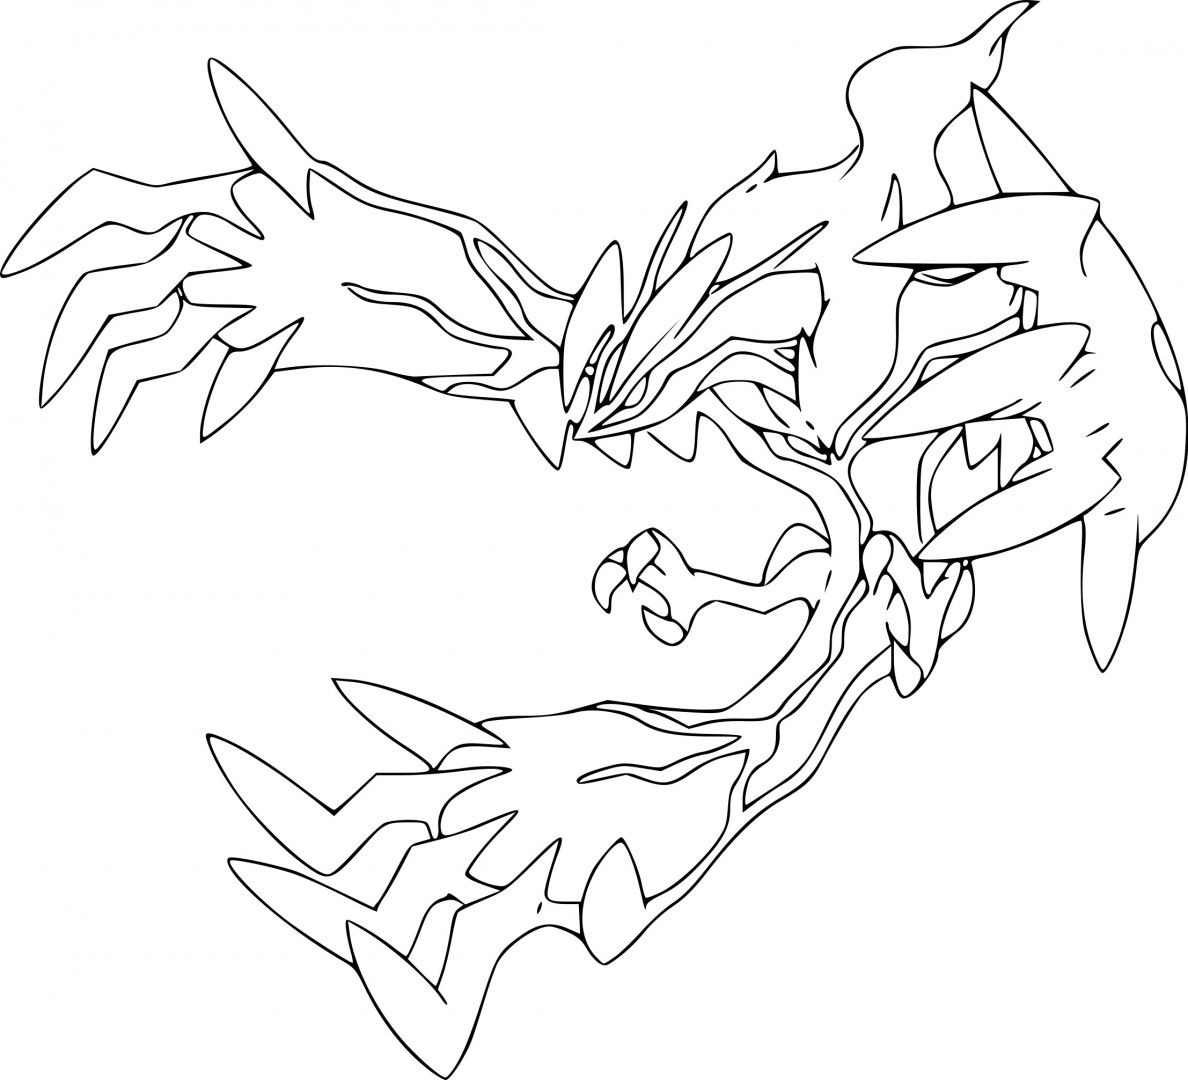 http://colorings.co/pokemon-yveltal-coloring-pages/ | Colorings ...